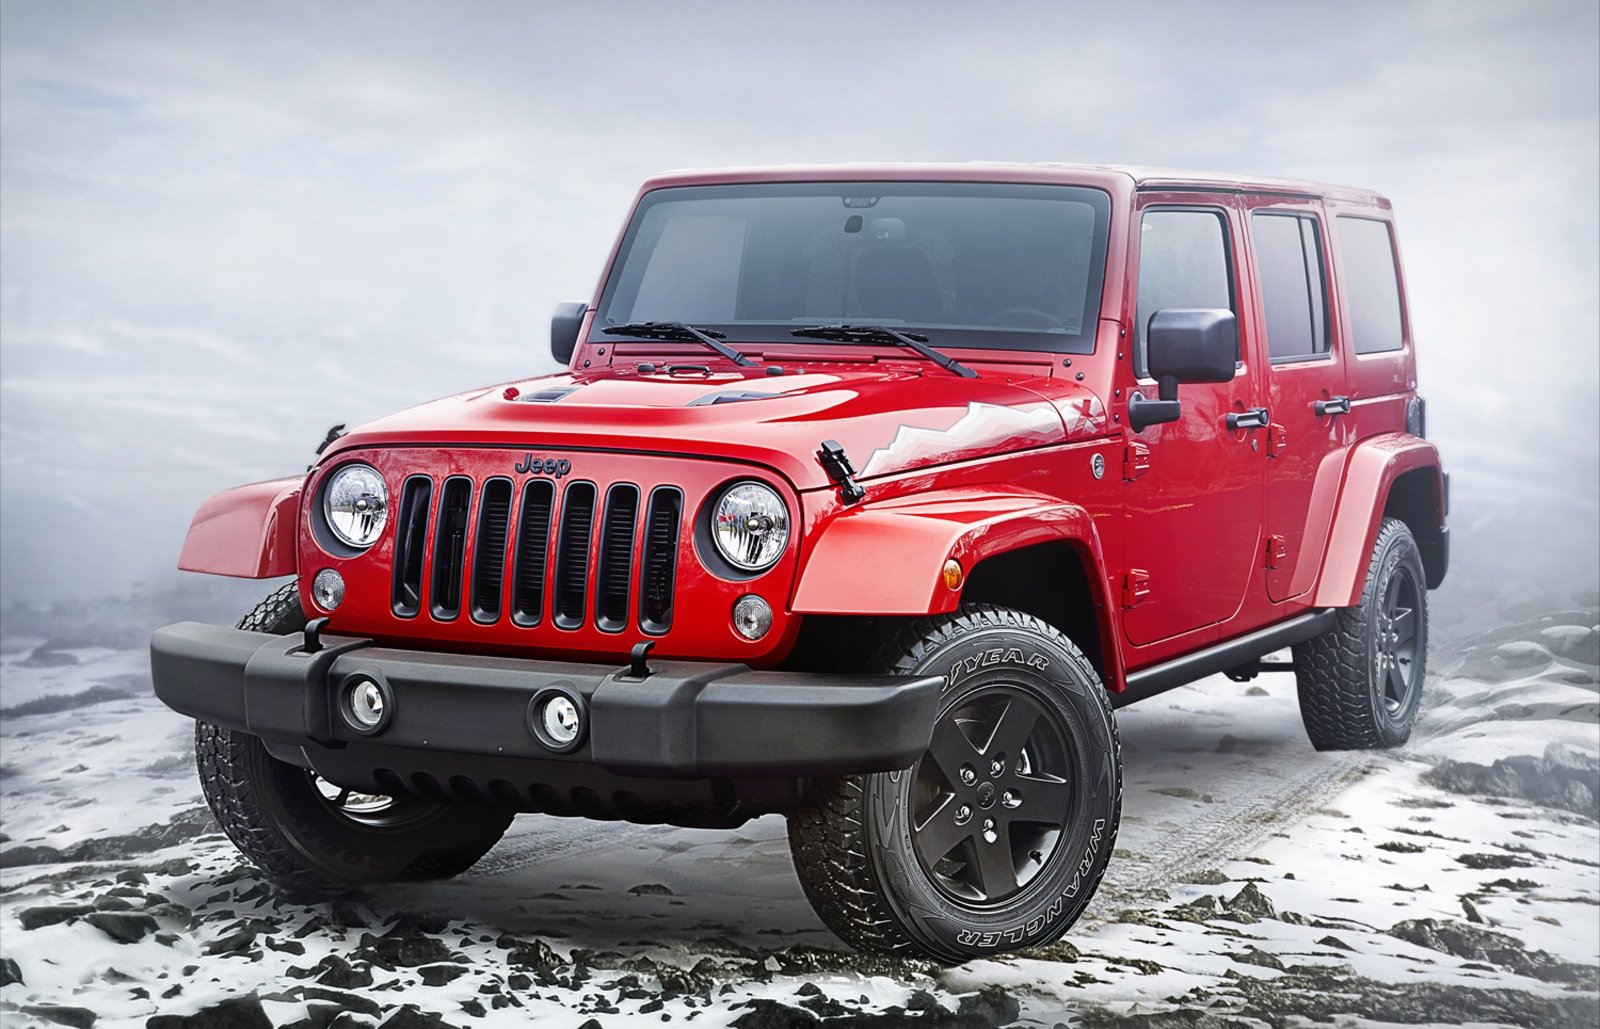 2015 jeep wrangler x edition review gallery top speed. Black Bedroom Furniture Sets. Home Design Ideas